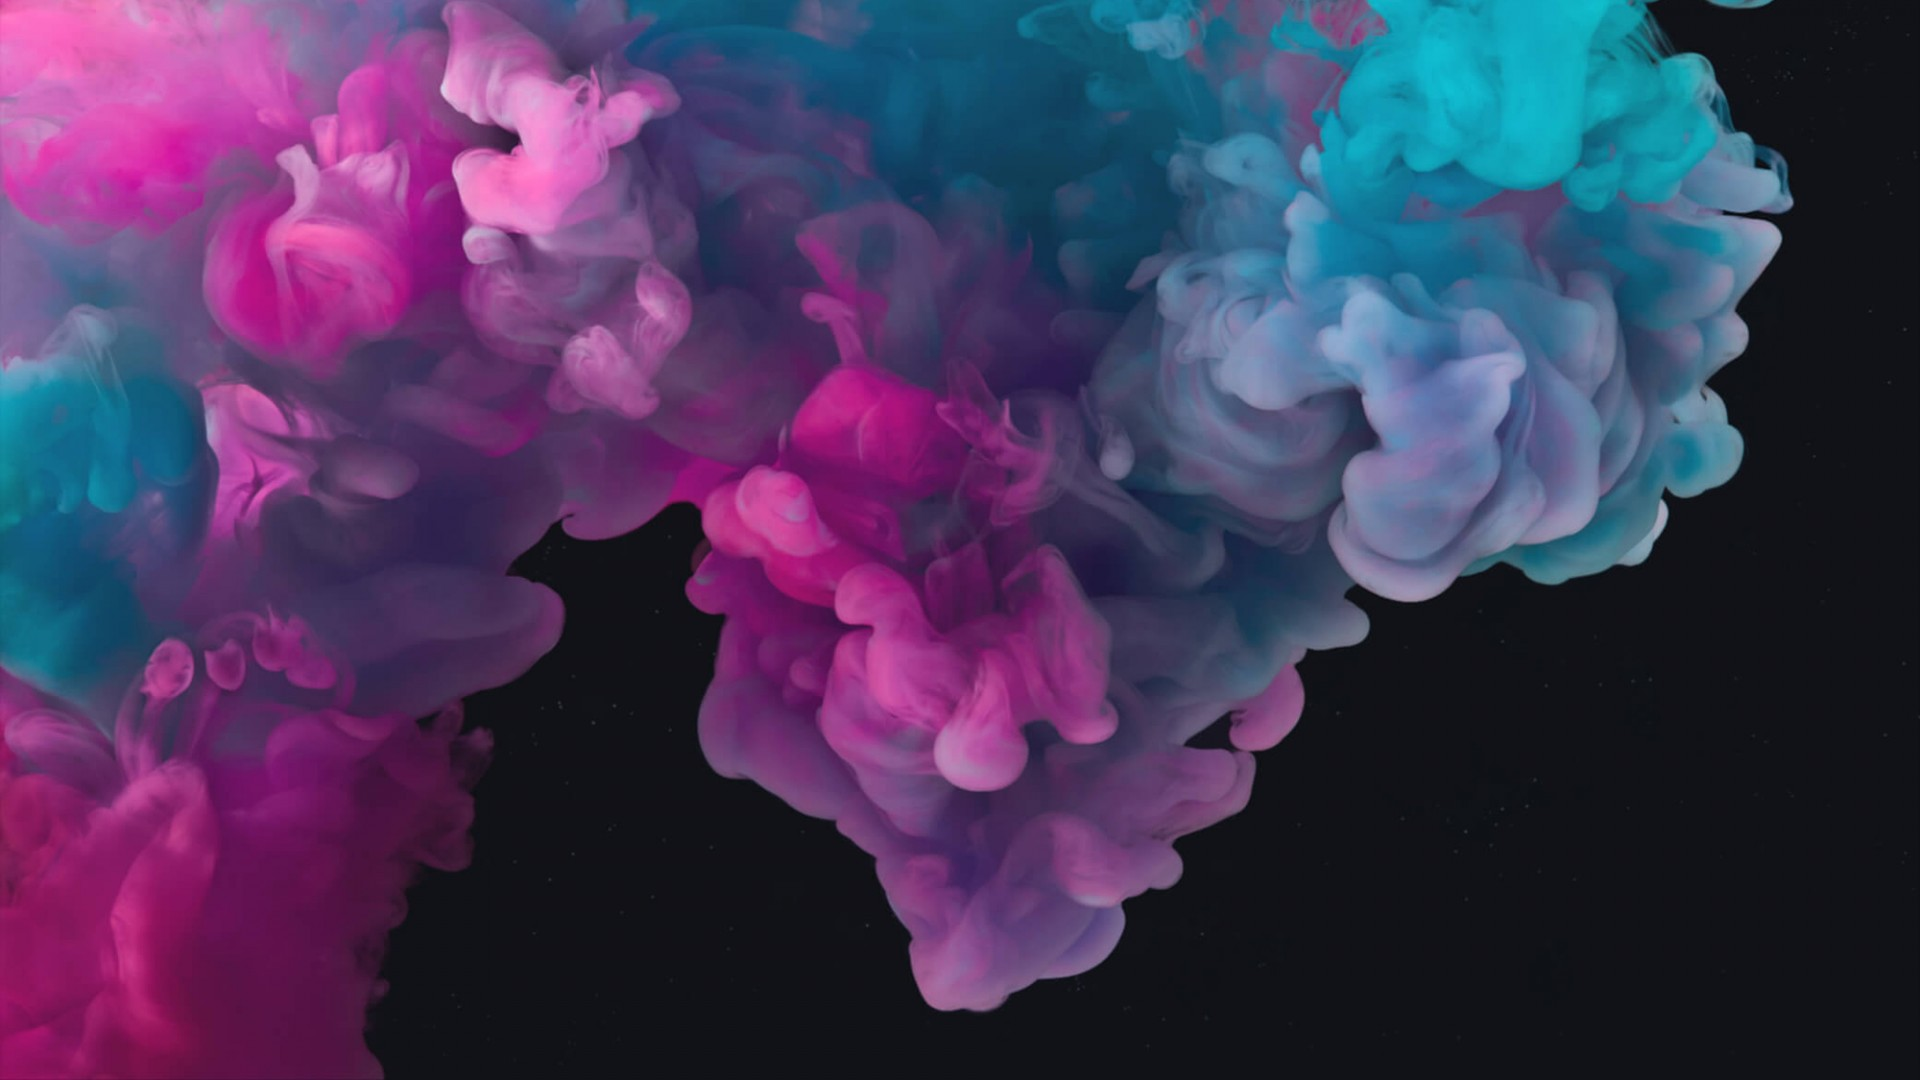 3d Art Nature Wallpaper Colorful Smoke Wallpapers Hd Wallpapers Id 26134